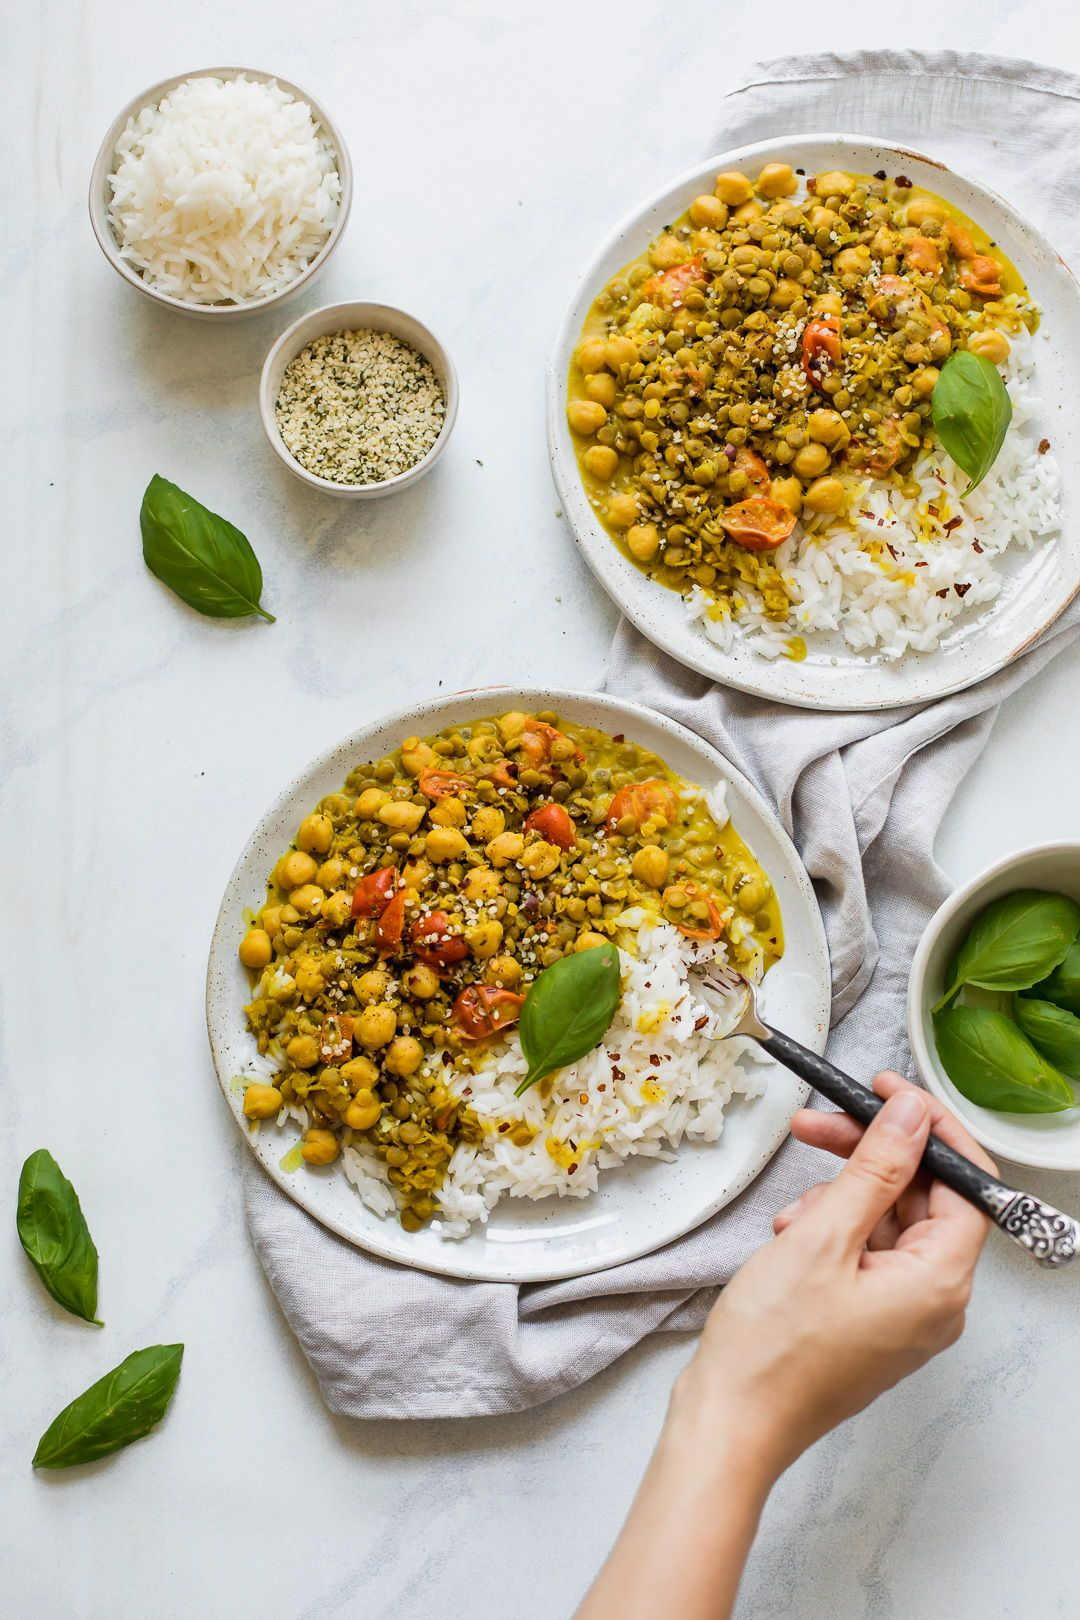 The BEST Coconut Lentil & Chickpea Curry The BEST Coconut Lentil & Chickpea Curry that's creamy, sweet, savory, spicy, and pairs perfectly with rice. Top it off with basil for the perfect, easy, healthy dinner recipe! This recipe is vegan, vegetarian, gluten-free, and dairy-free.